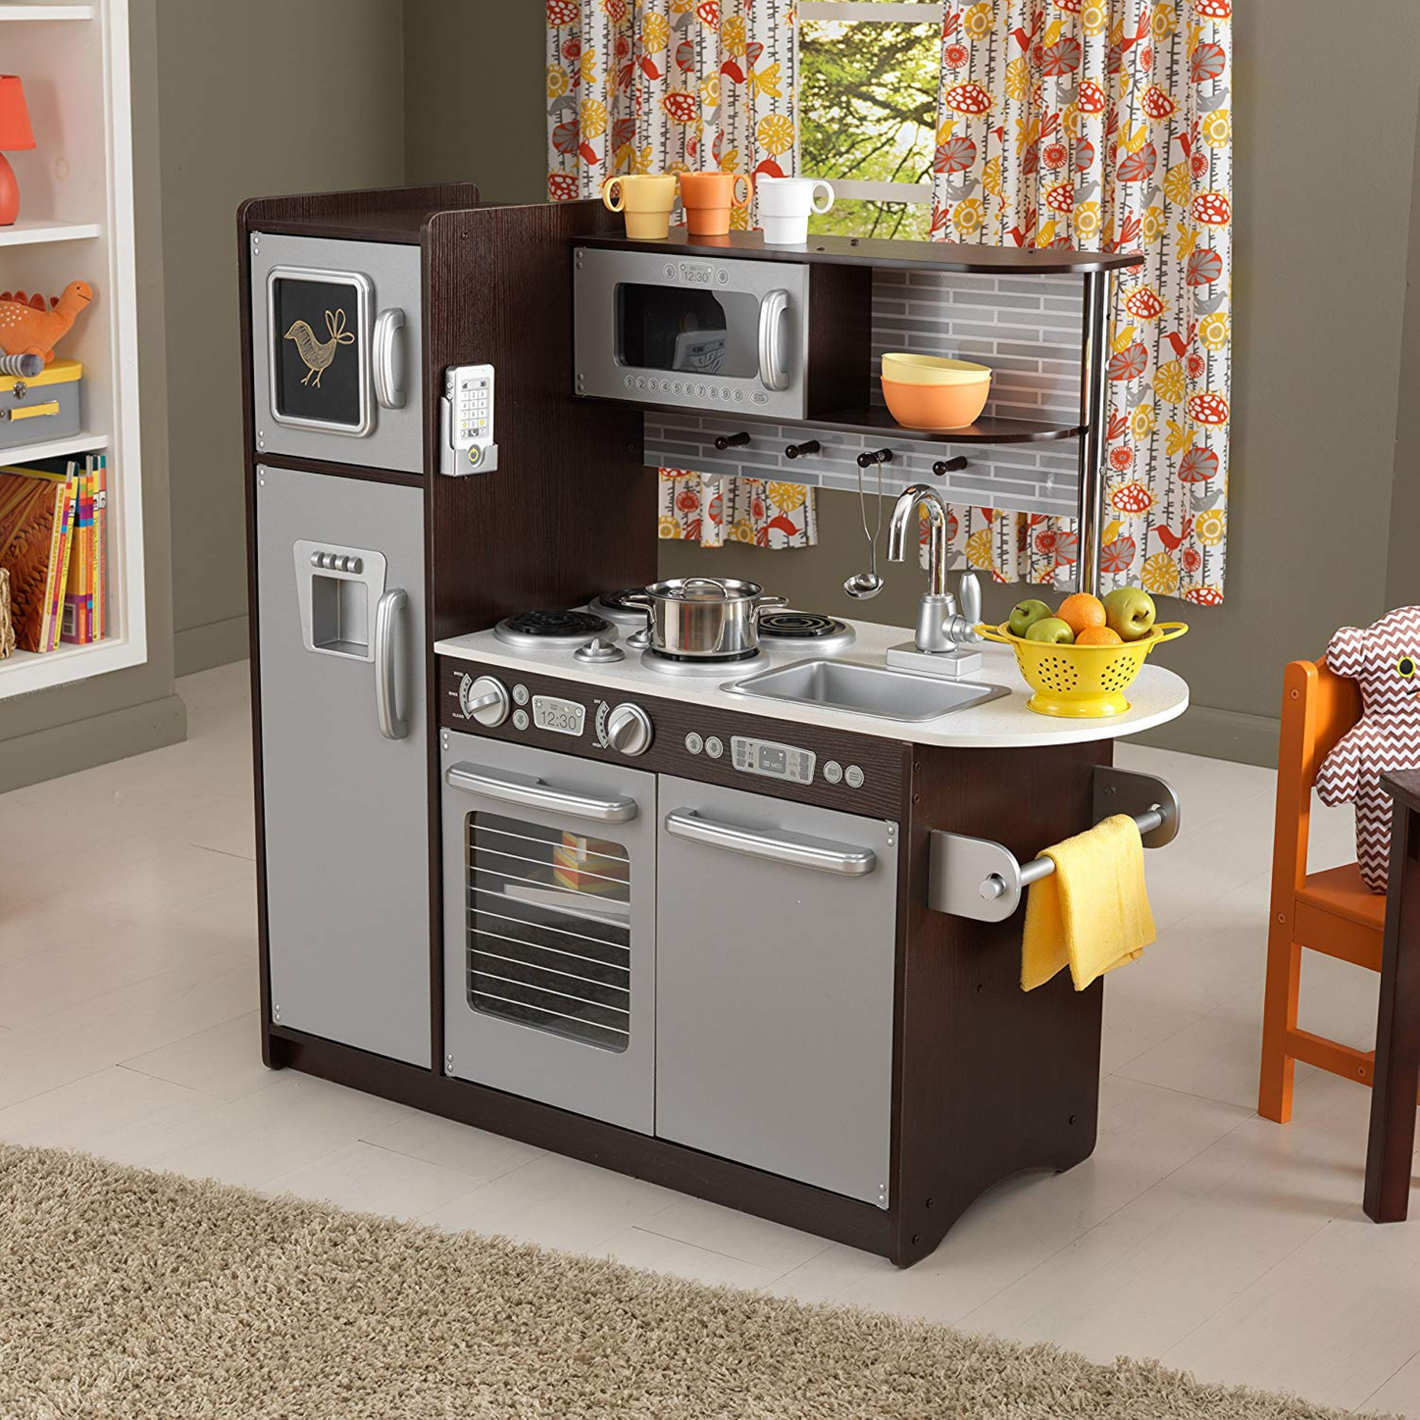 The Best Kitchen Set